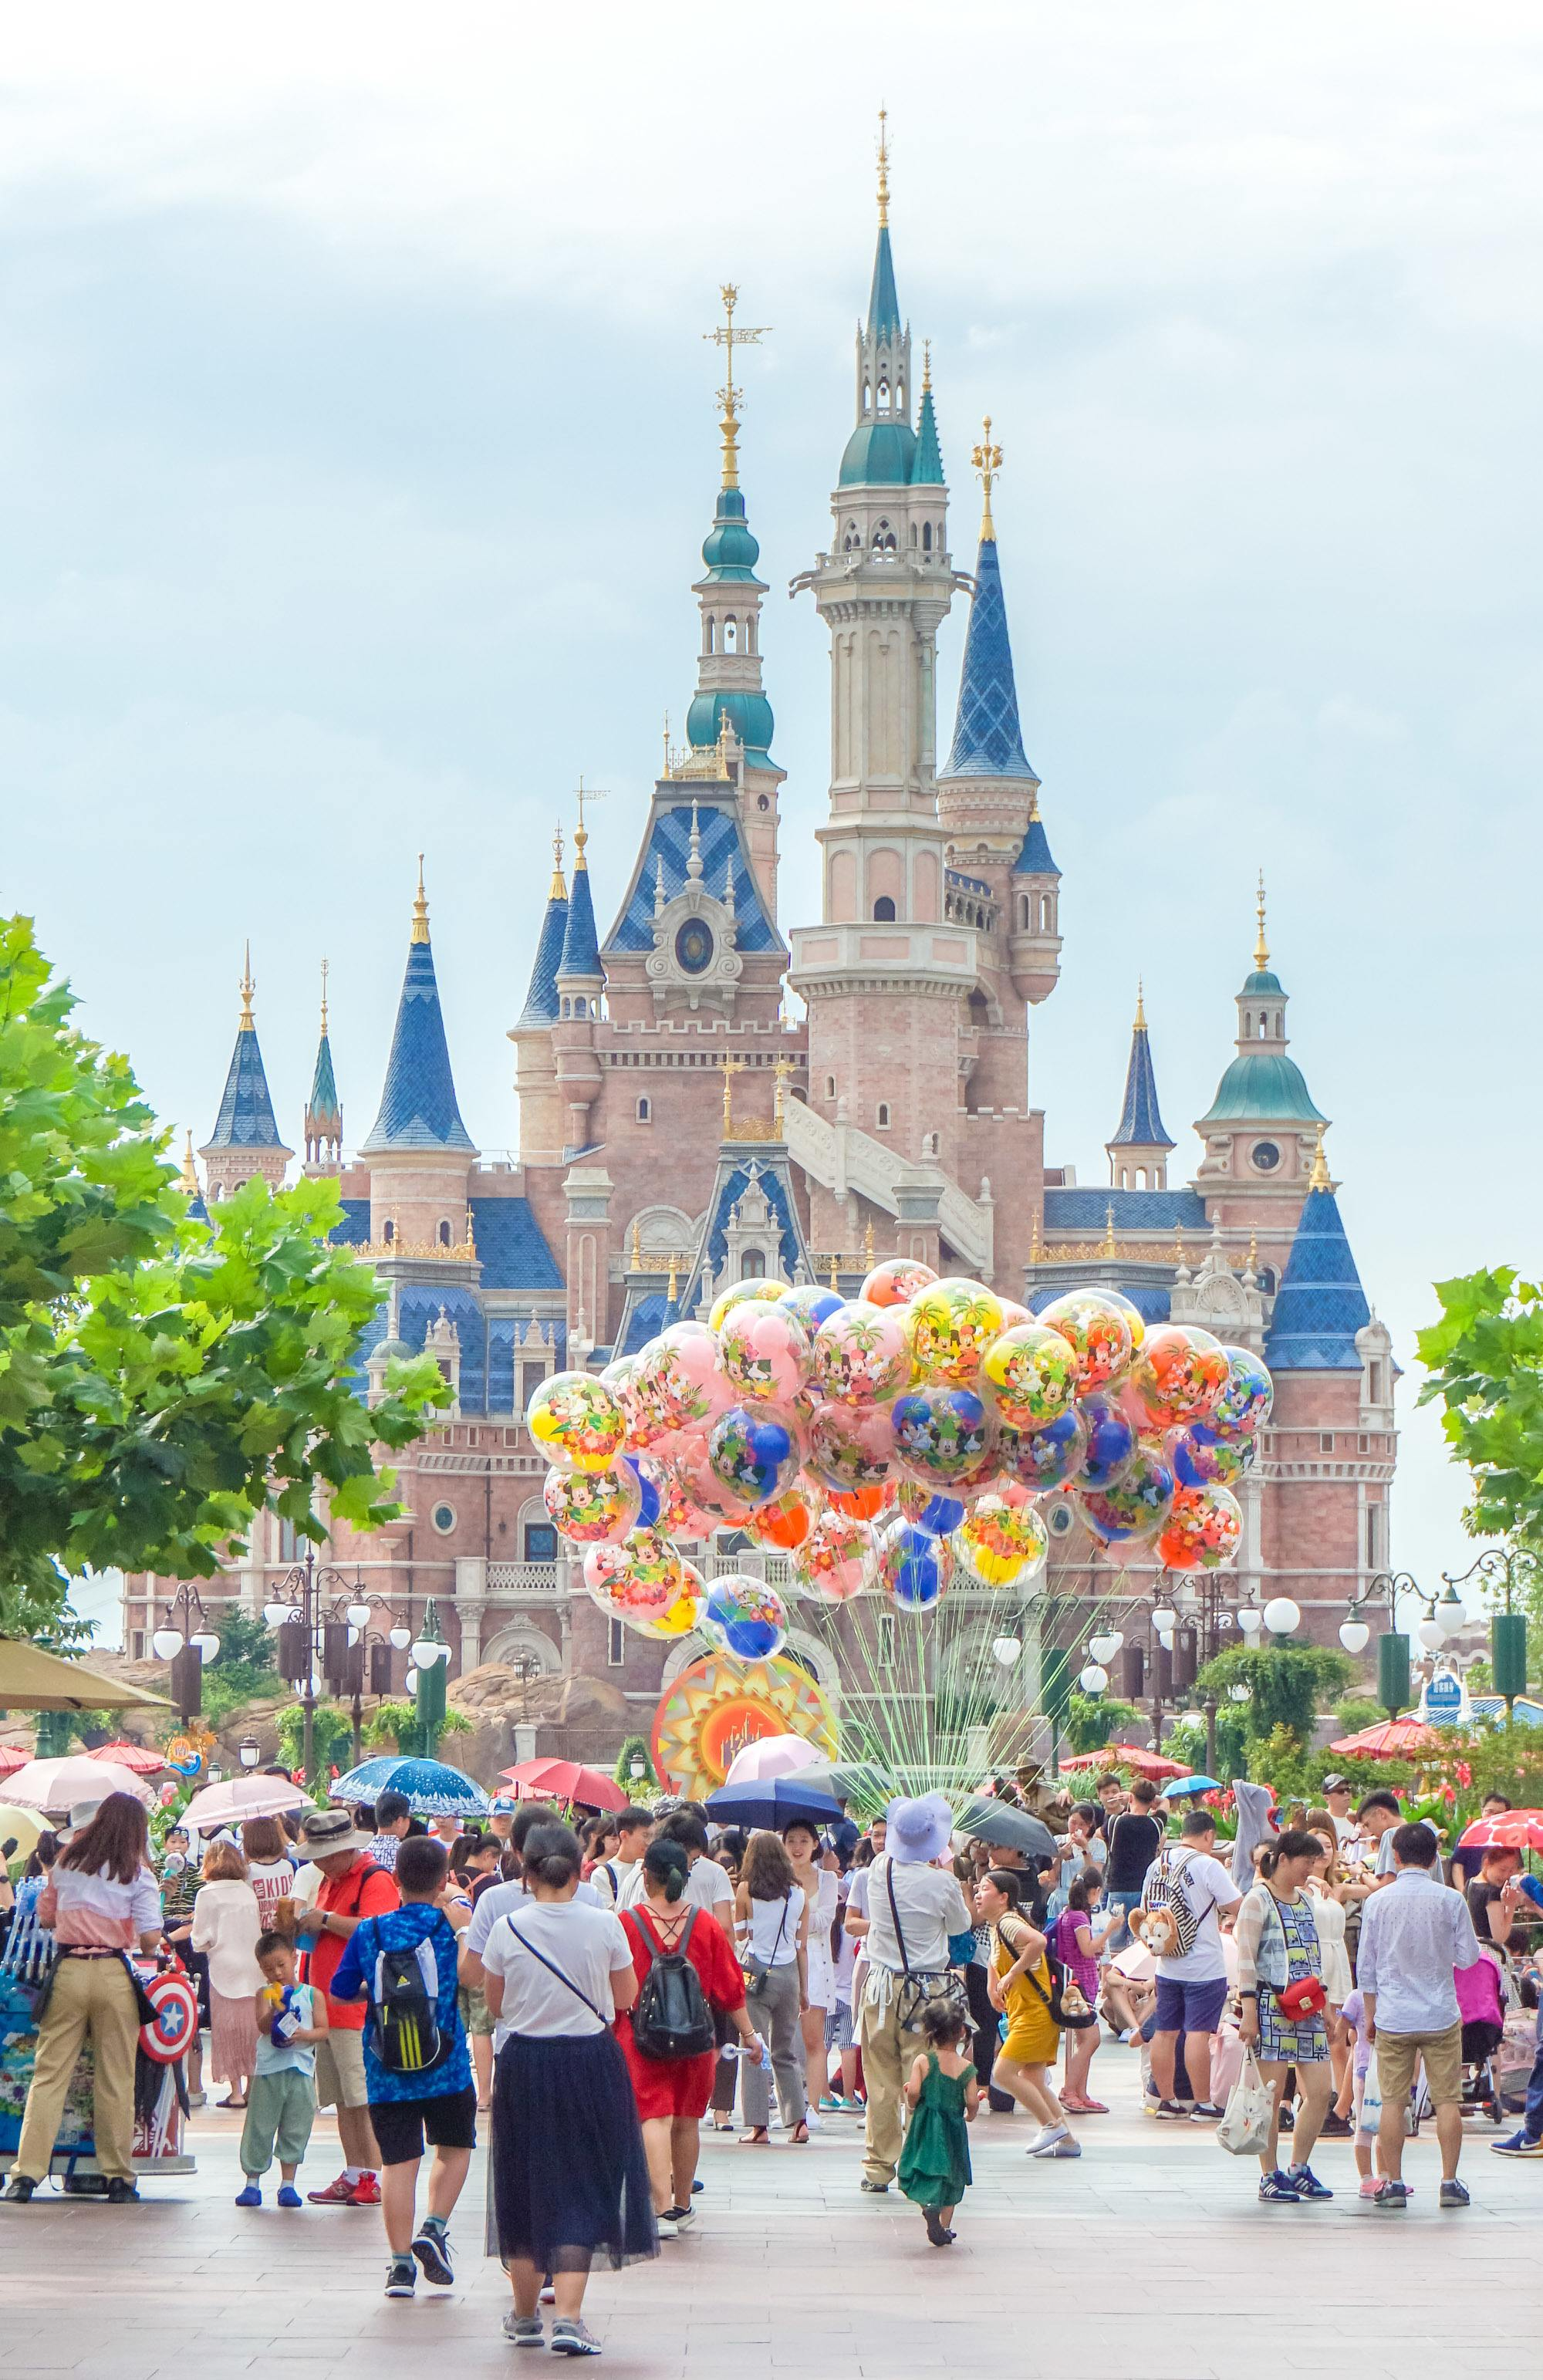 The Shanghai Disneyland castle is called the Enchanted Storybook Castle and is the largest of any Disney park.